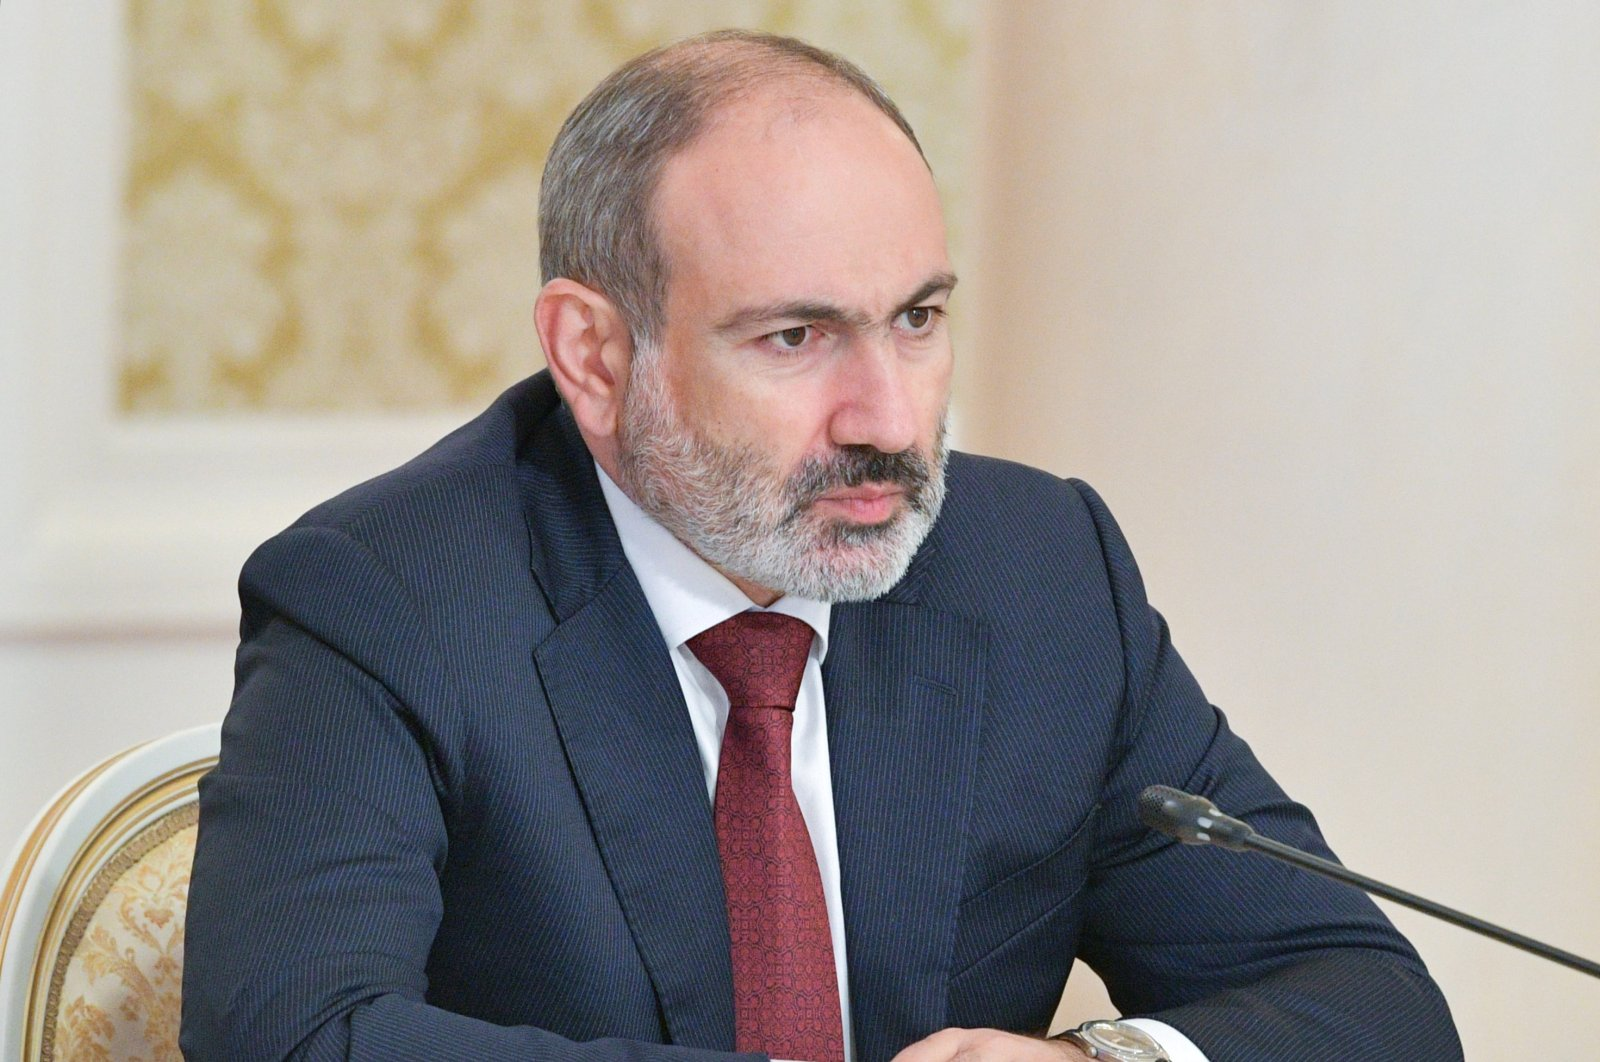 Armenian Prime Minister Nikol Pashinian attends a meeting with Russian Prime Minister Mikhail Mishustin before a session of the Eurasian Economic Union (EAEU) Intergovernmental Council in Kazan, Russia, 29 April 2021. (EPA Photo)